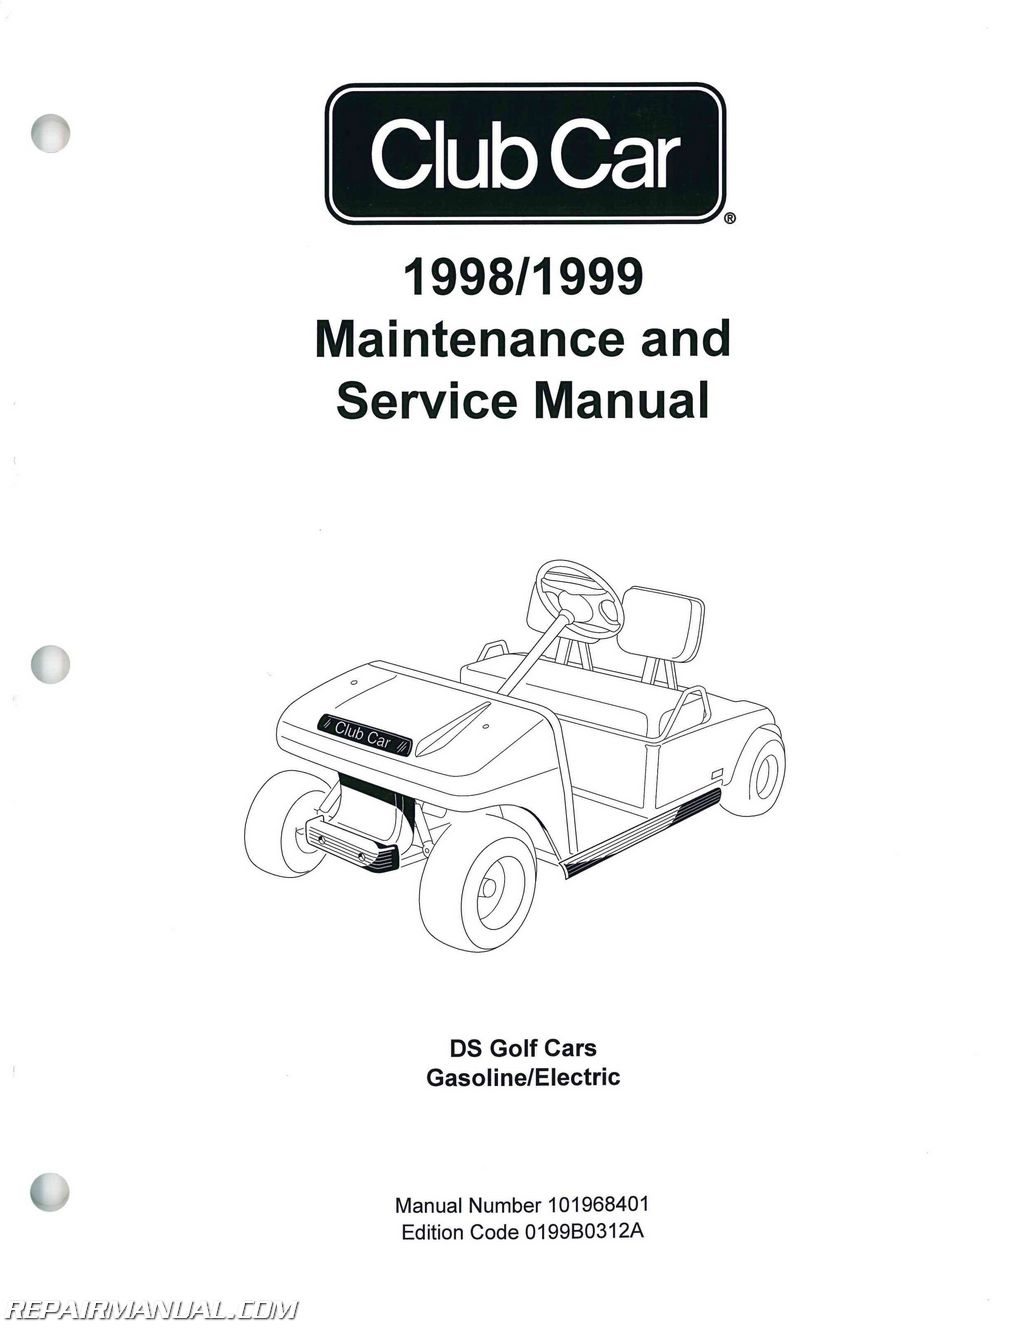 1998 Club Car Ds Wiring Diagram from www.repairmanual.com